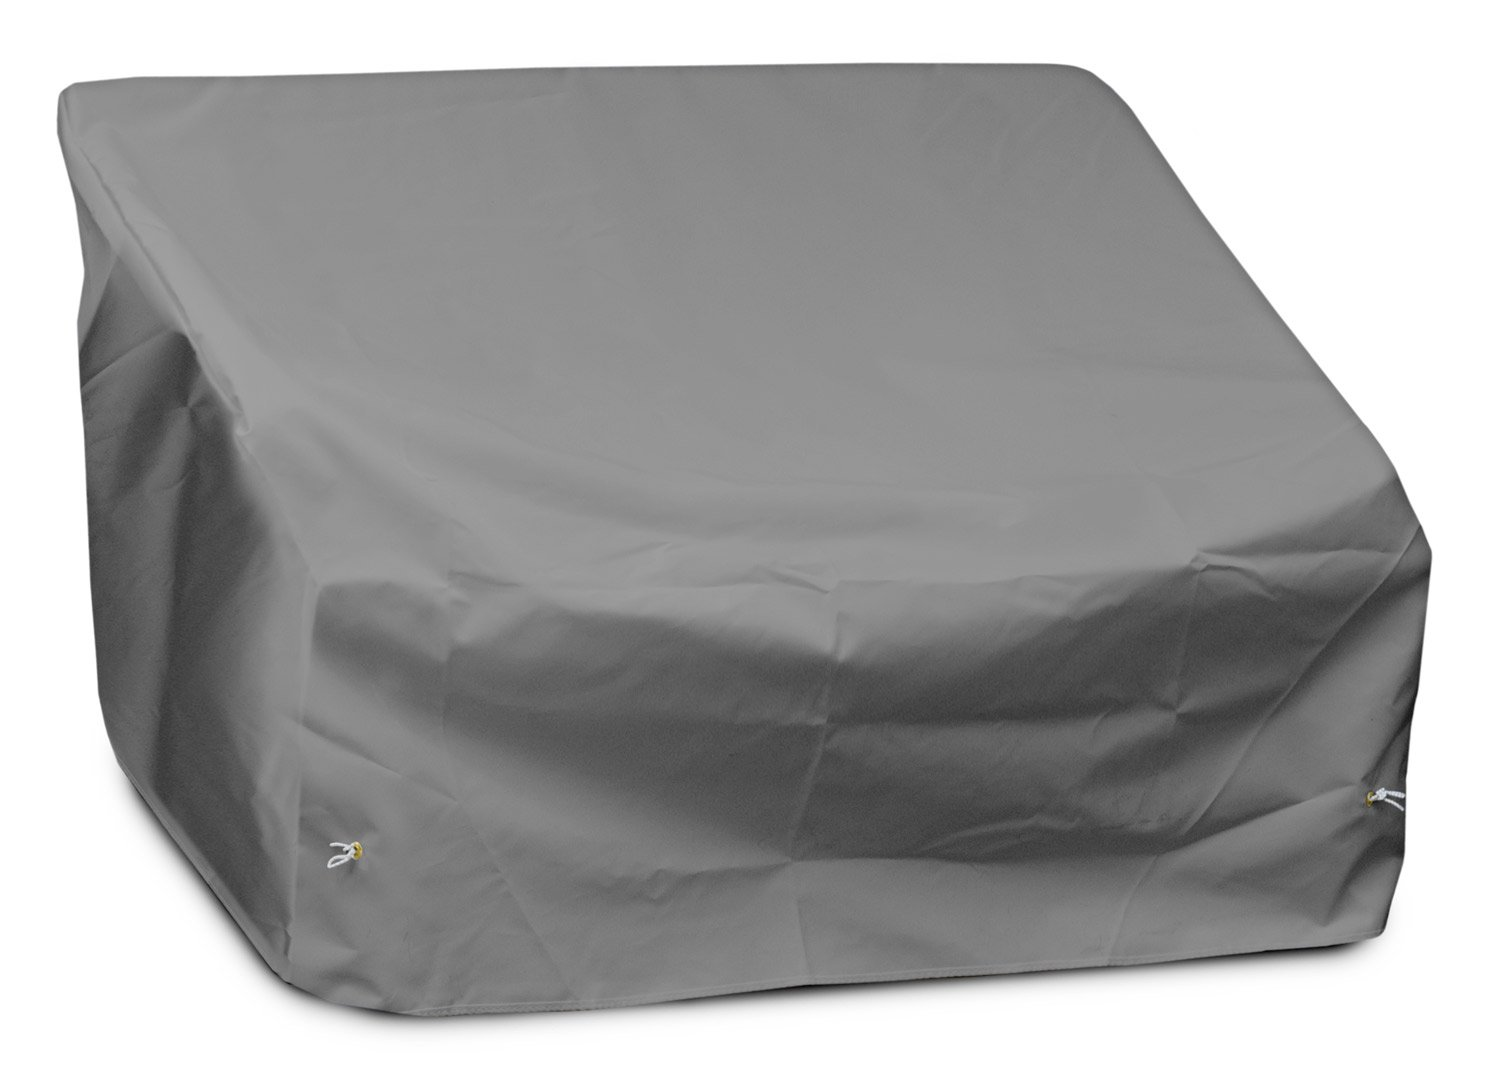 KoverRoos Weathermax 89147 Loveseat/Sofa Cover, 51-Inch Width by 33-Inch Diameter by 33-Inch Height, Charcoal